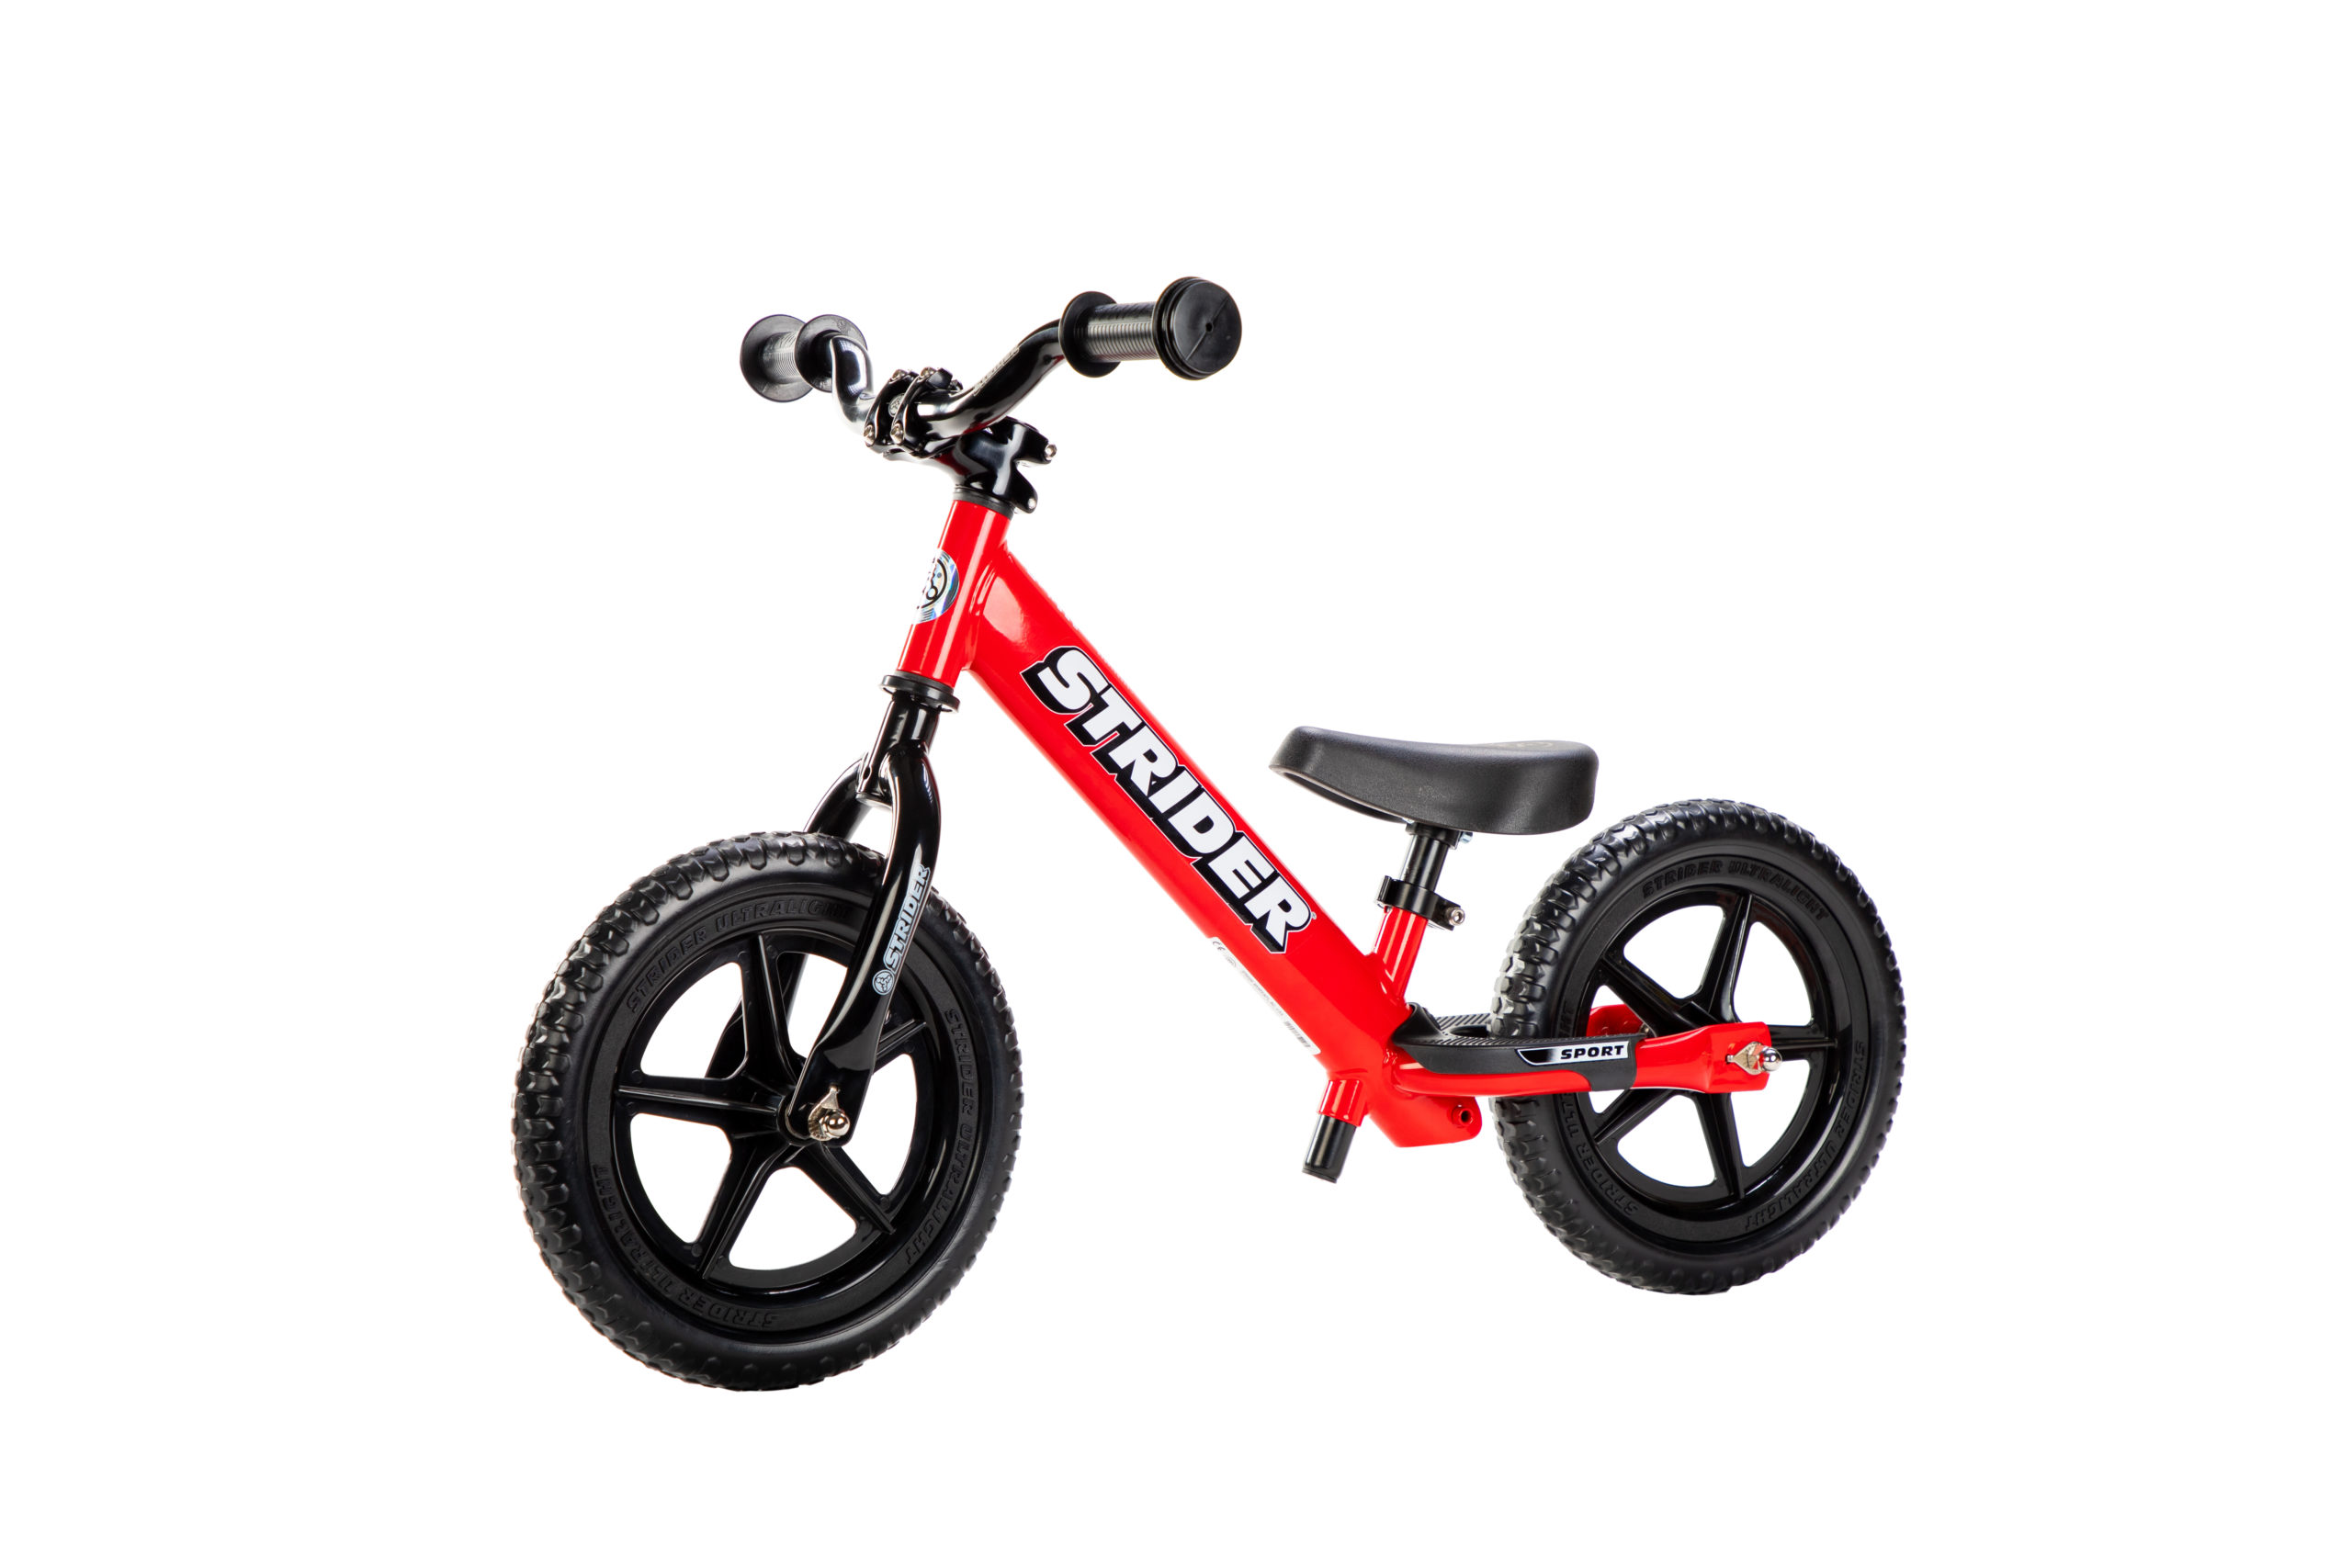 Studio image of Strider Aluminum Riser Handlebar with Grips on red 12 Sport - angle view